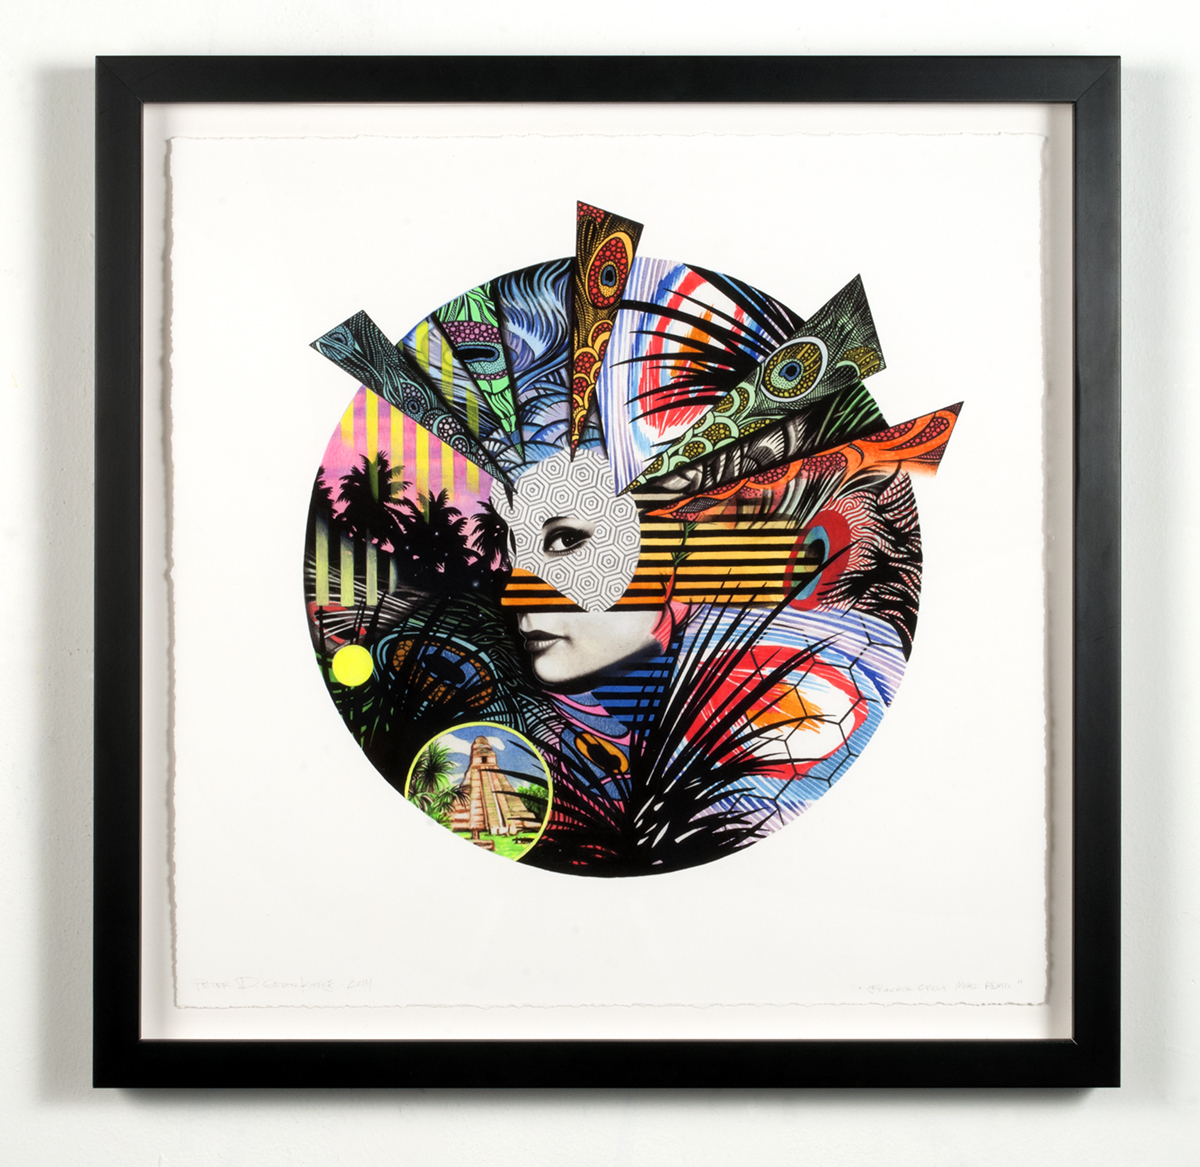 """Peacock Opera Mask   2014  Hand-colored archival print with gouache and acrylic on paper  16"""" x16"""" framed"""